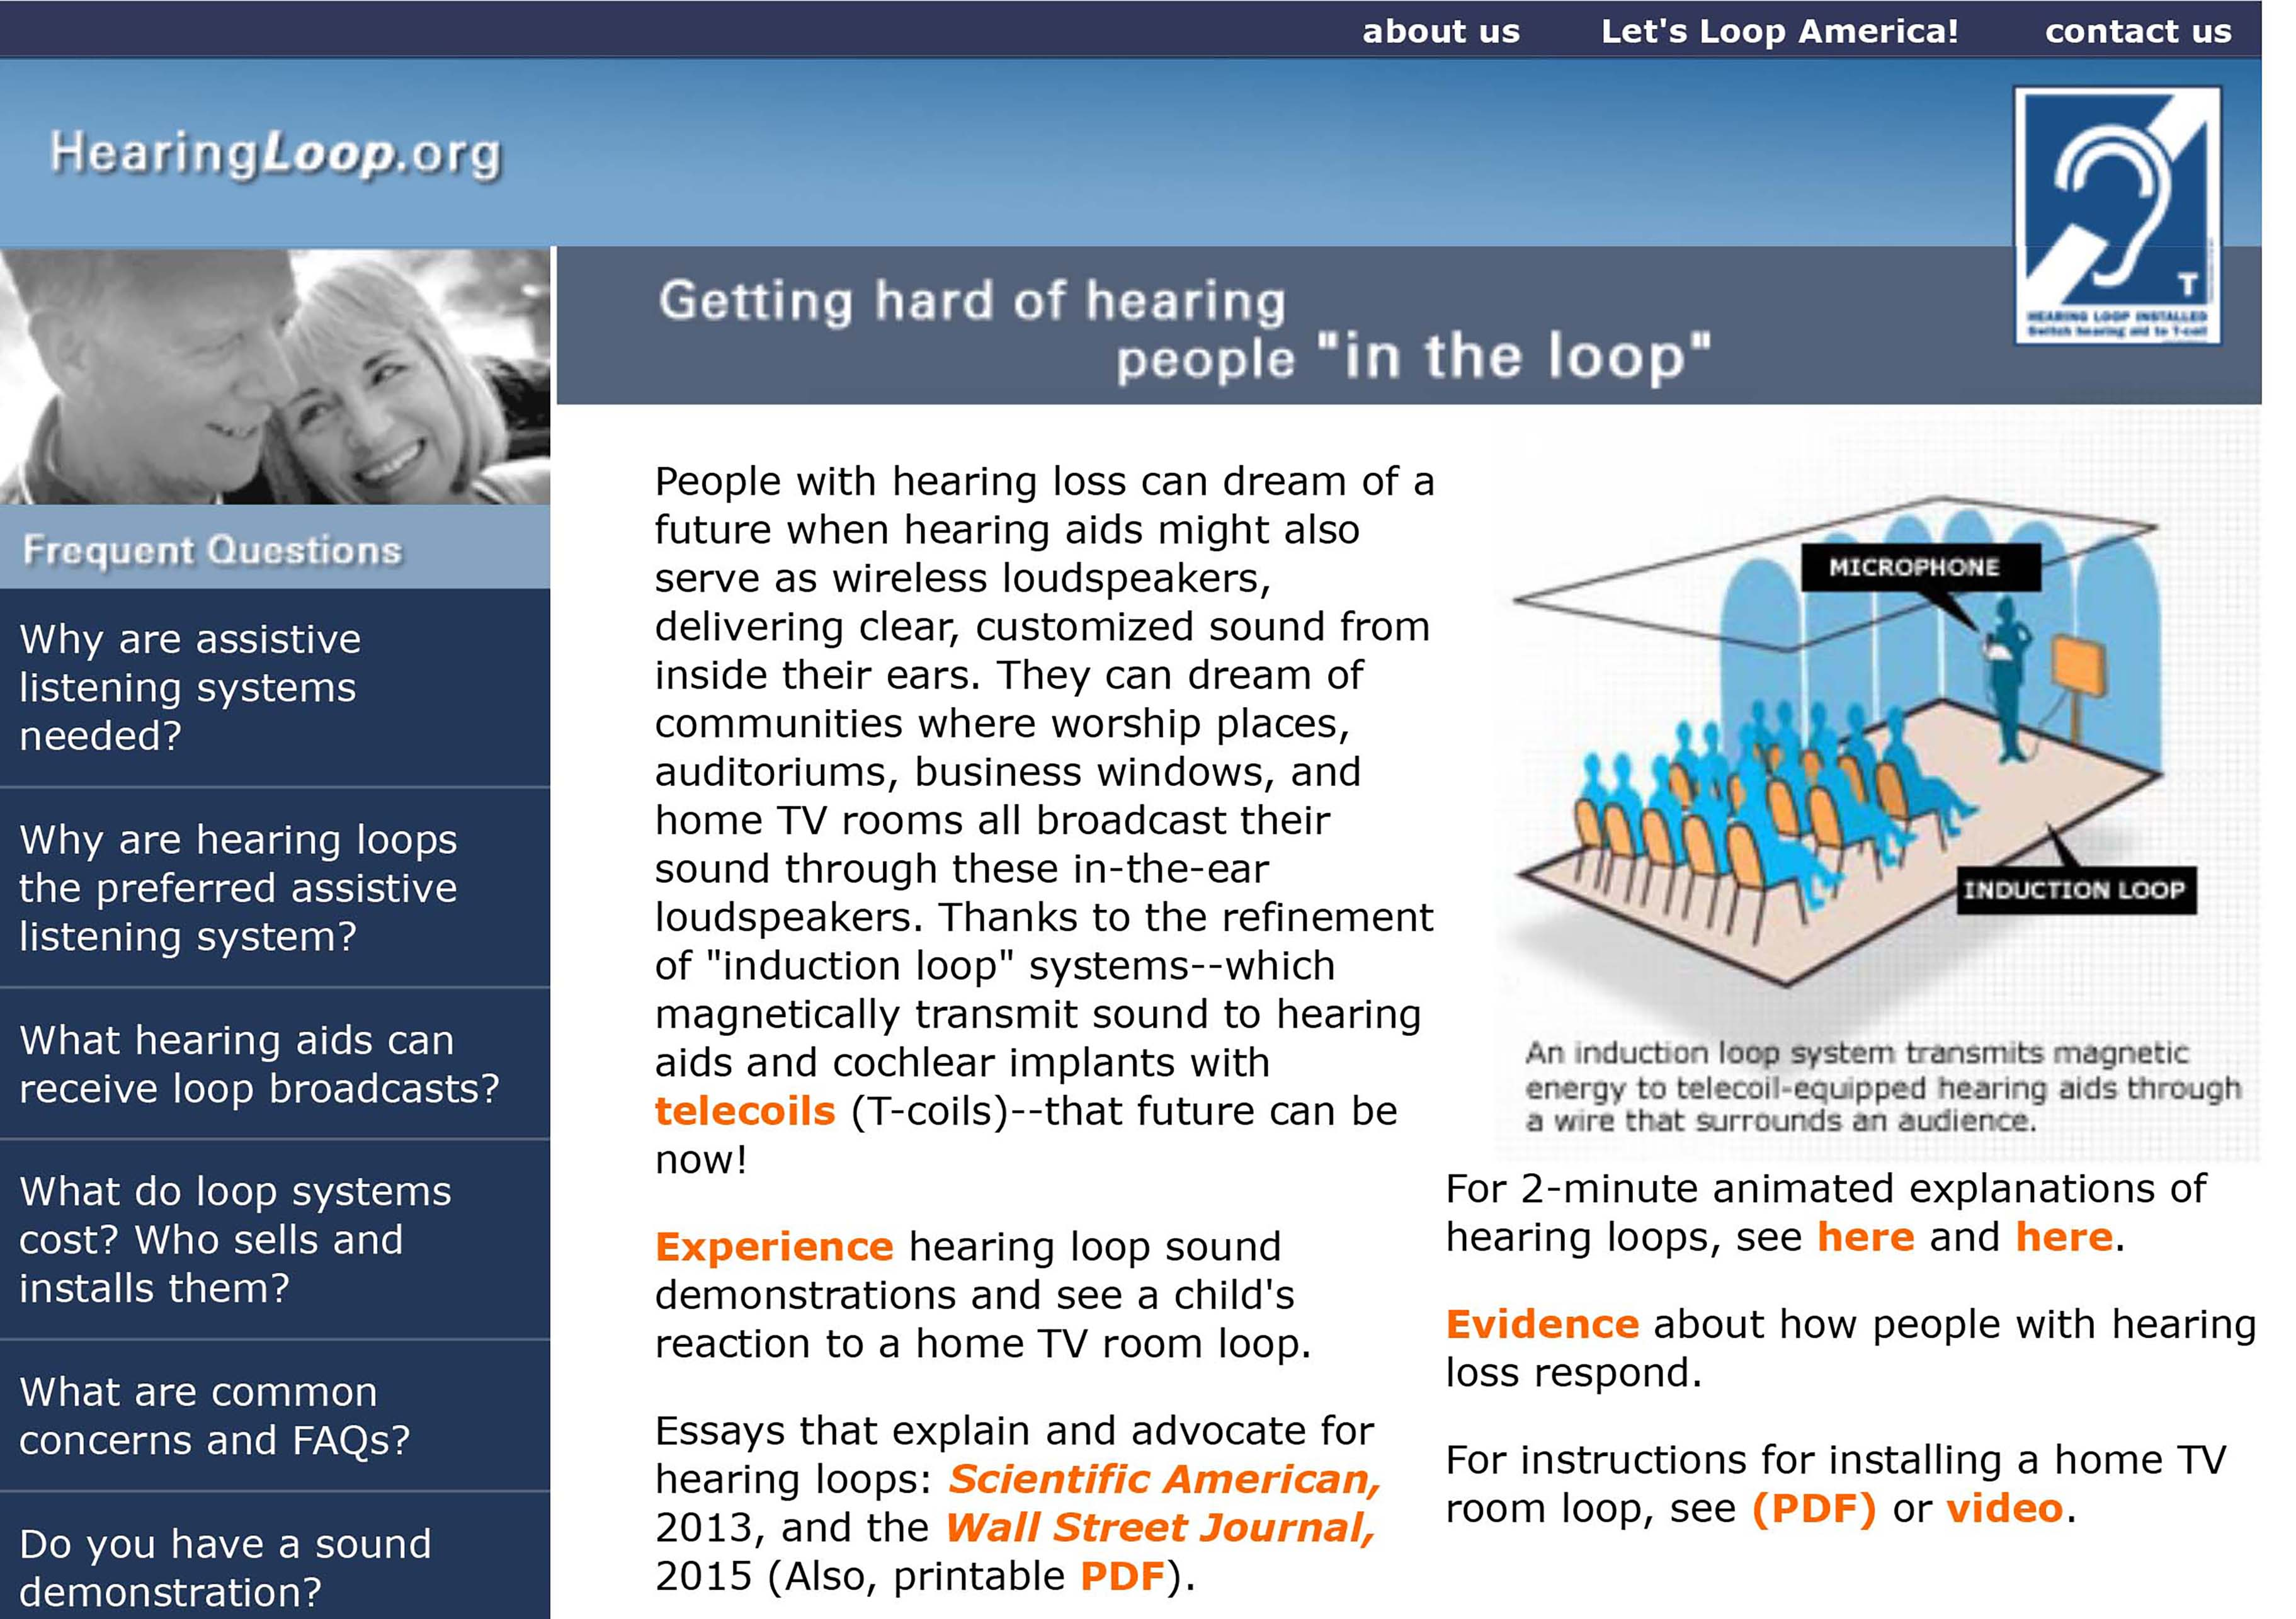 Inloop Hearing Wellness About Us Page